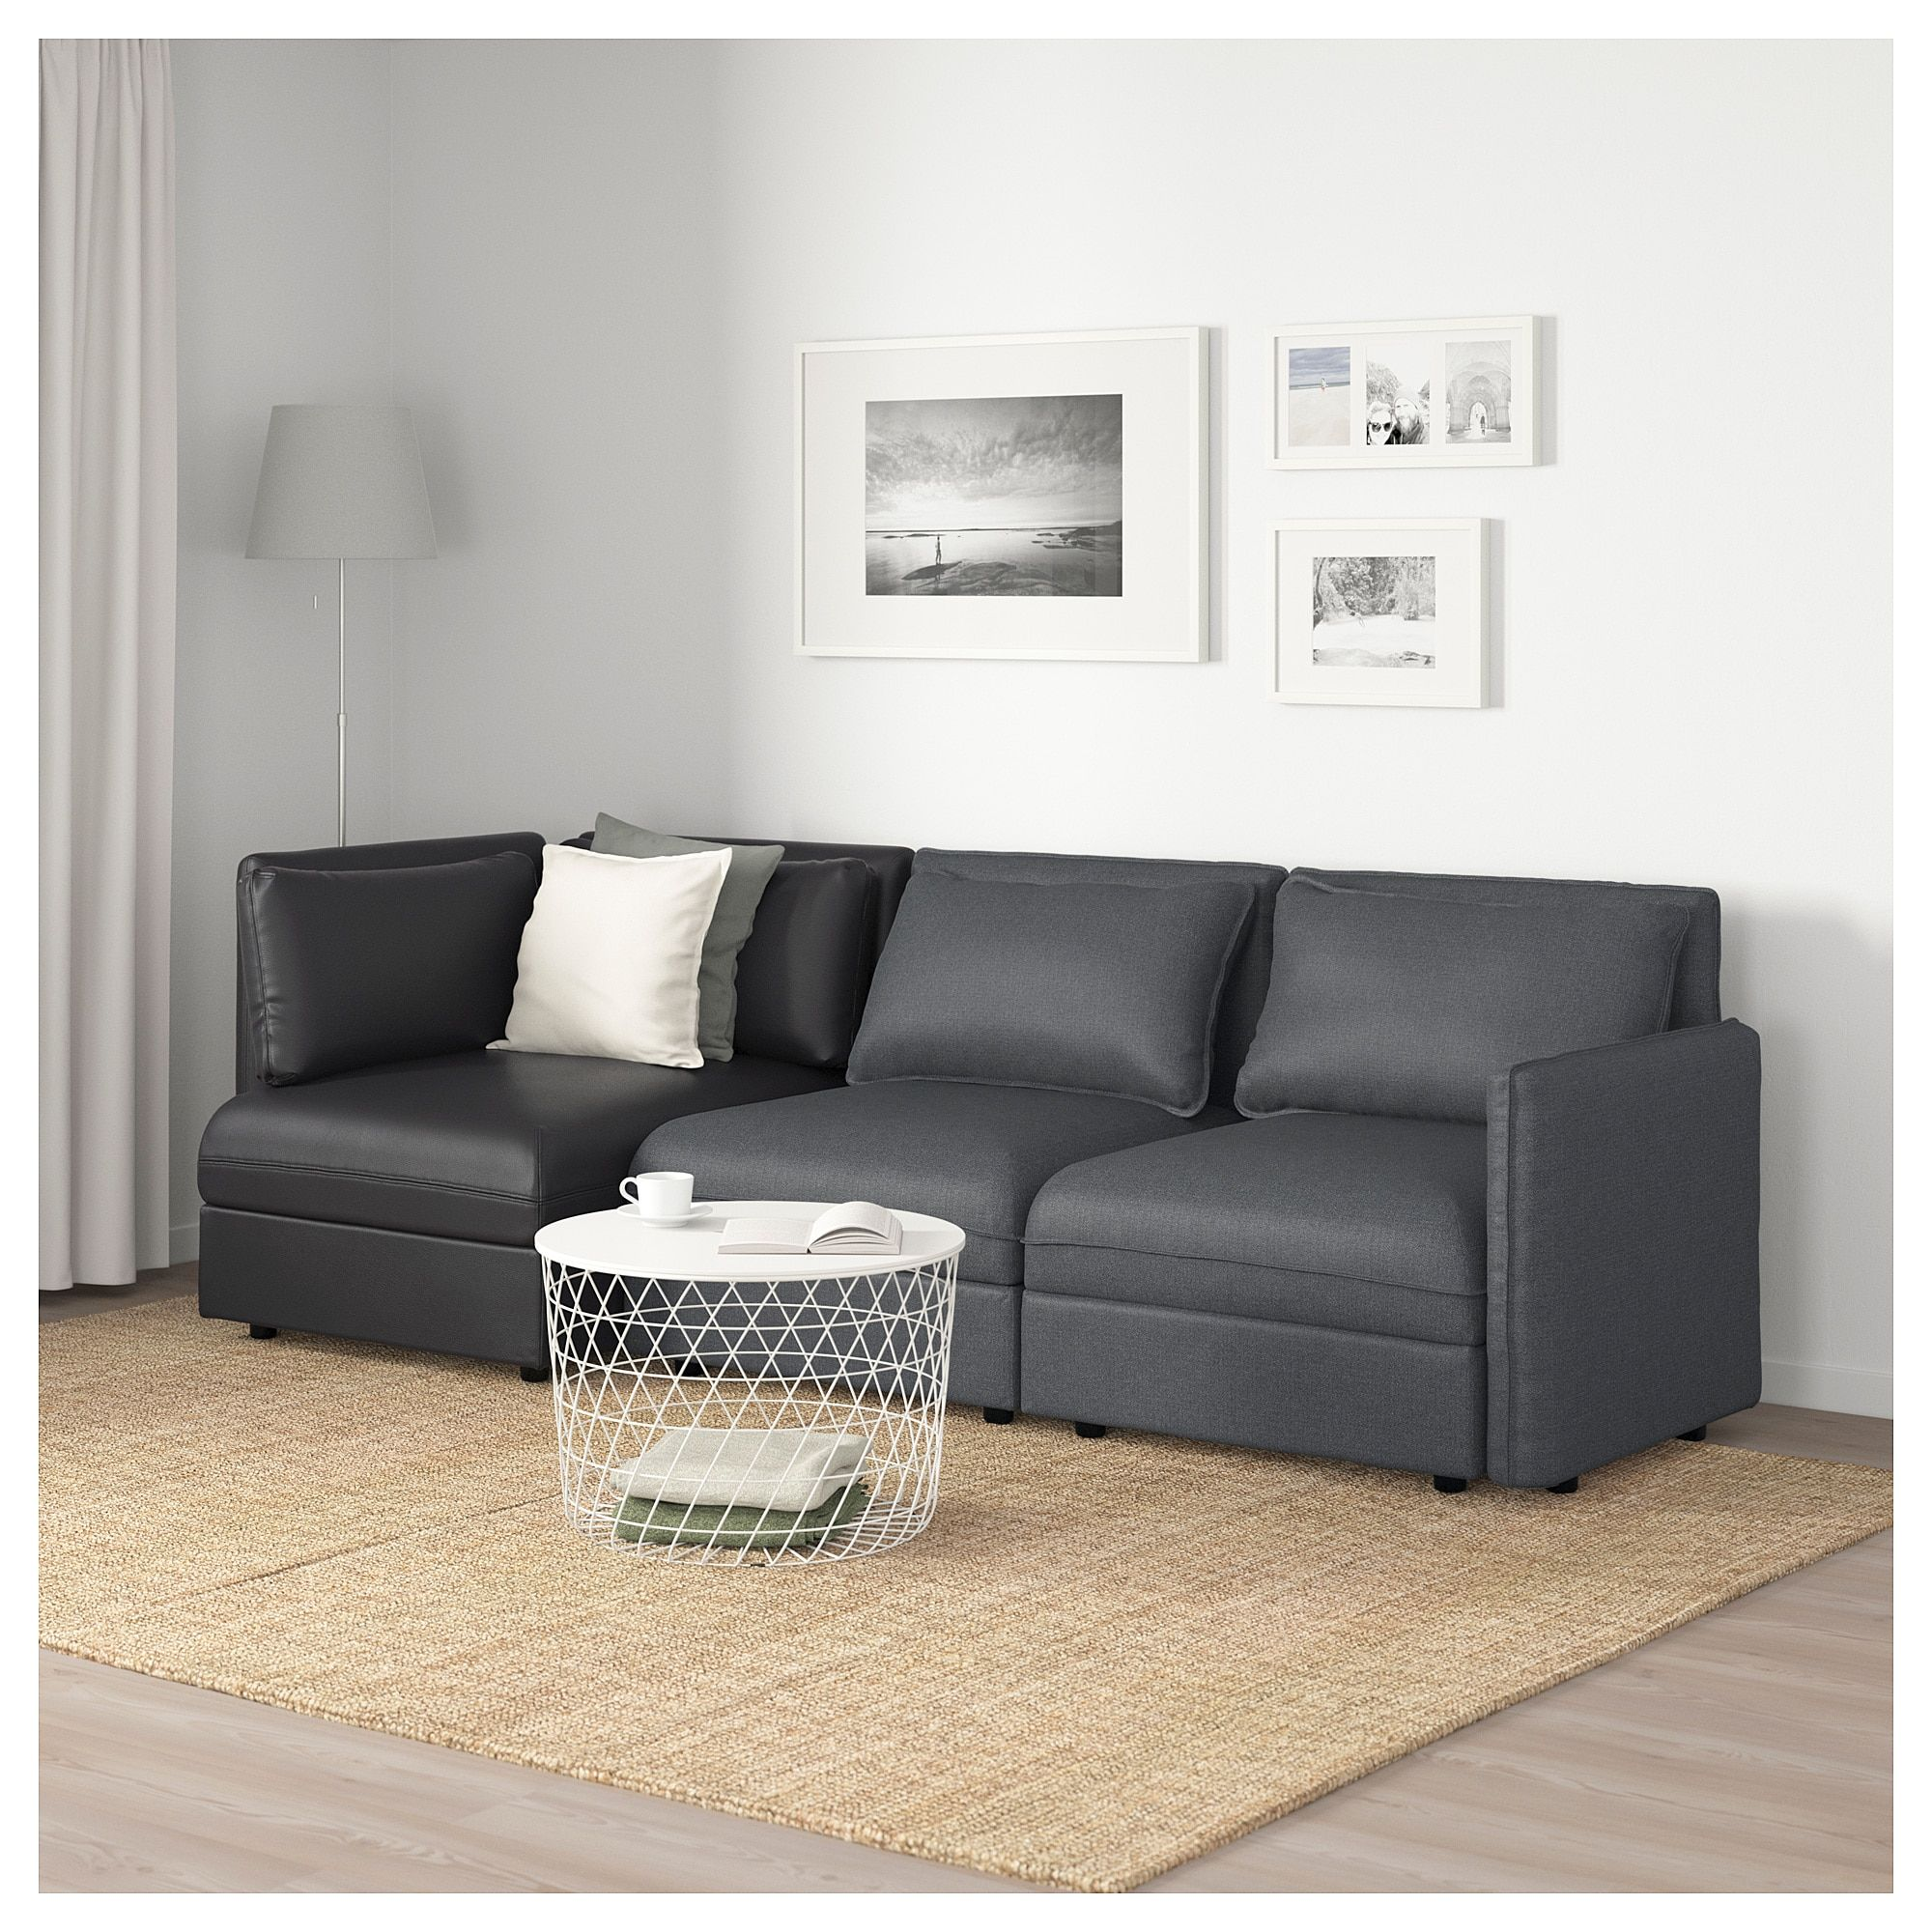 Ikea Vallentuna Canape Modulable 3 Places Avec Rangement In 2019 Products Sofa Bed With Storage Sofa Modular Sofa